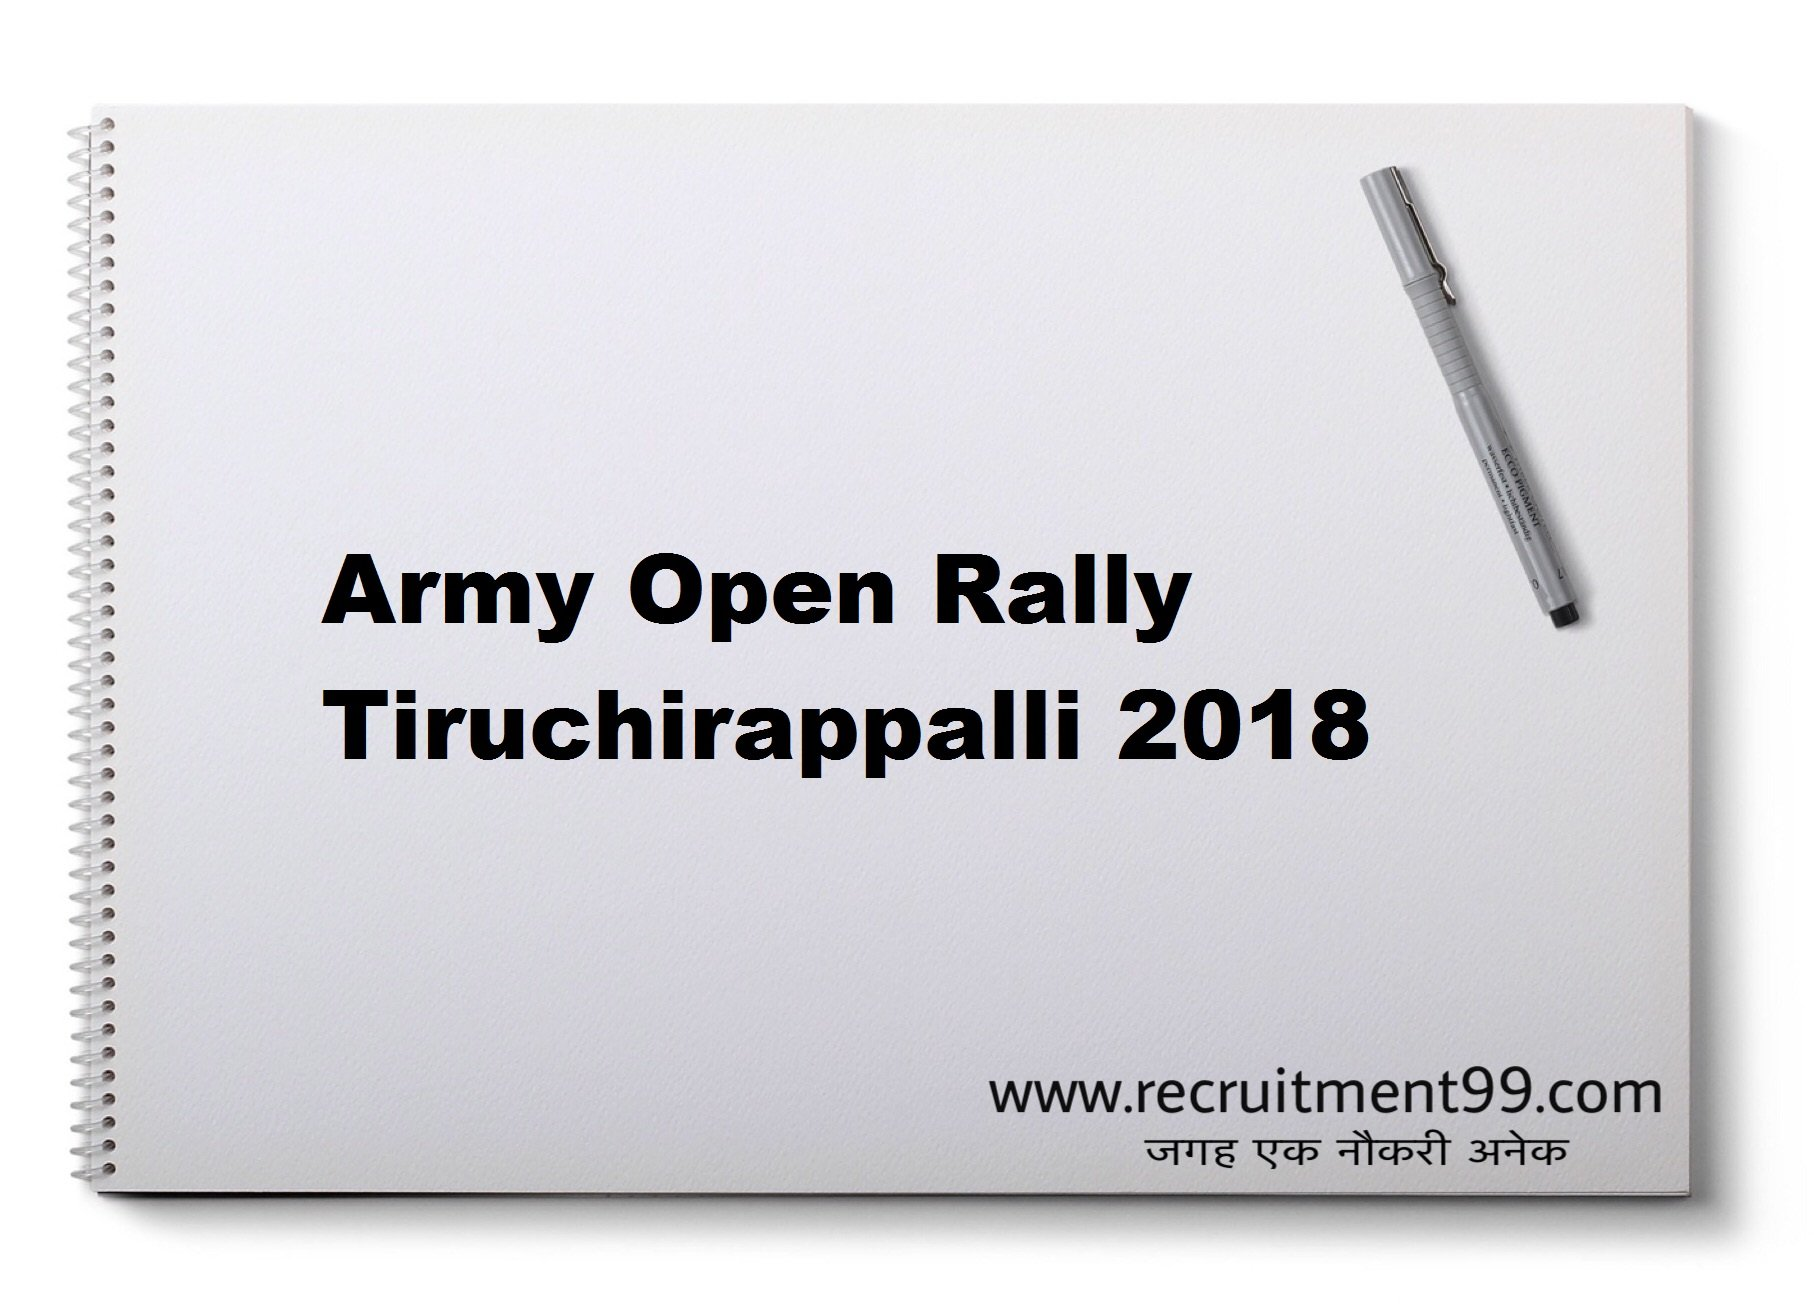 Army Open Rally Tiruchirappalli Recruitment Admit Card Result 2018